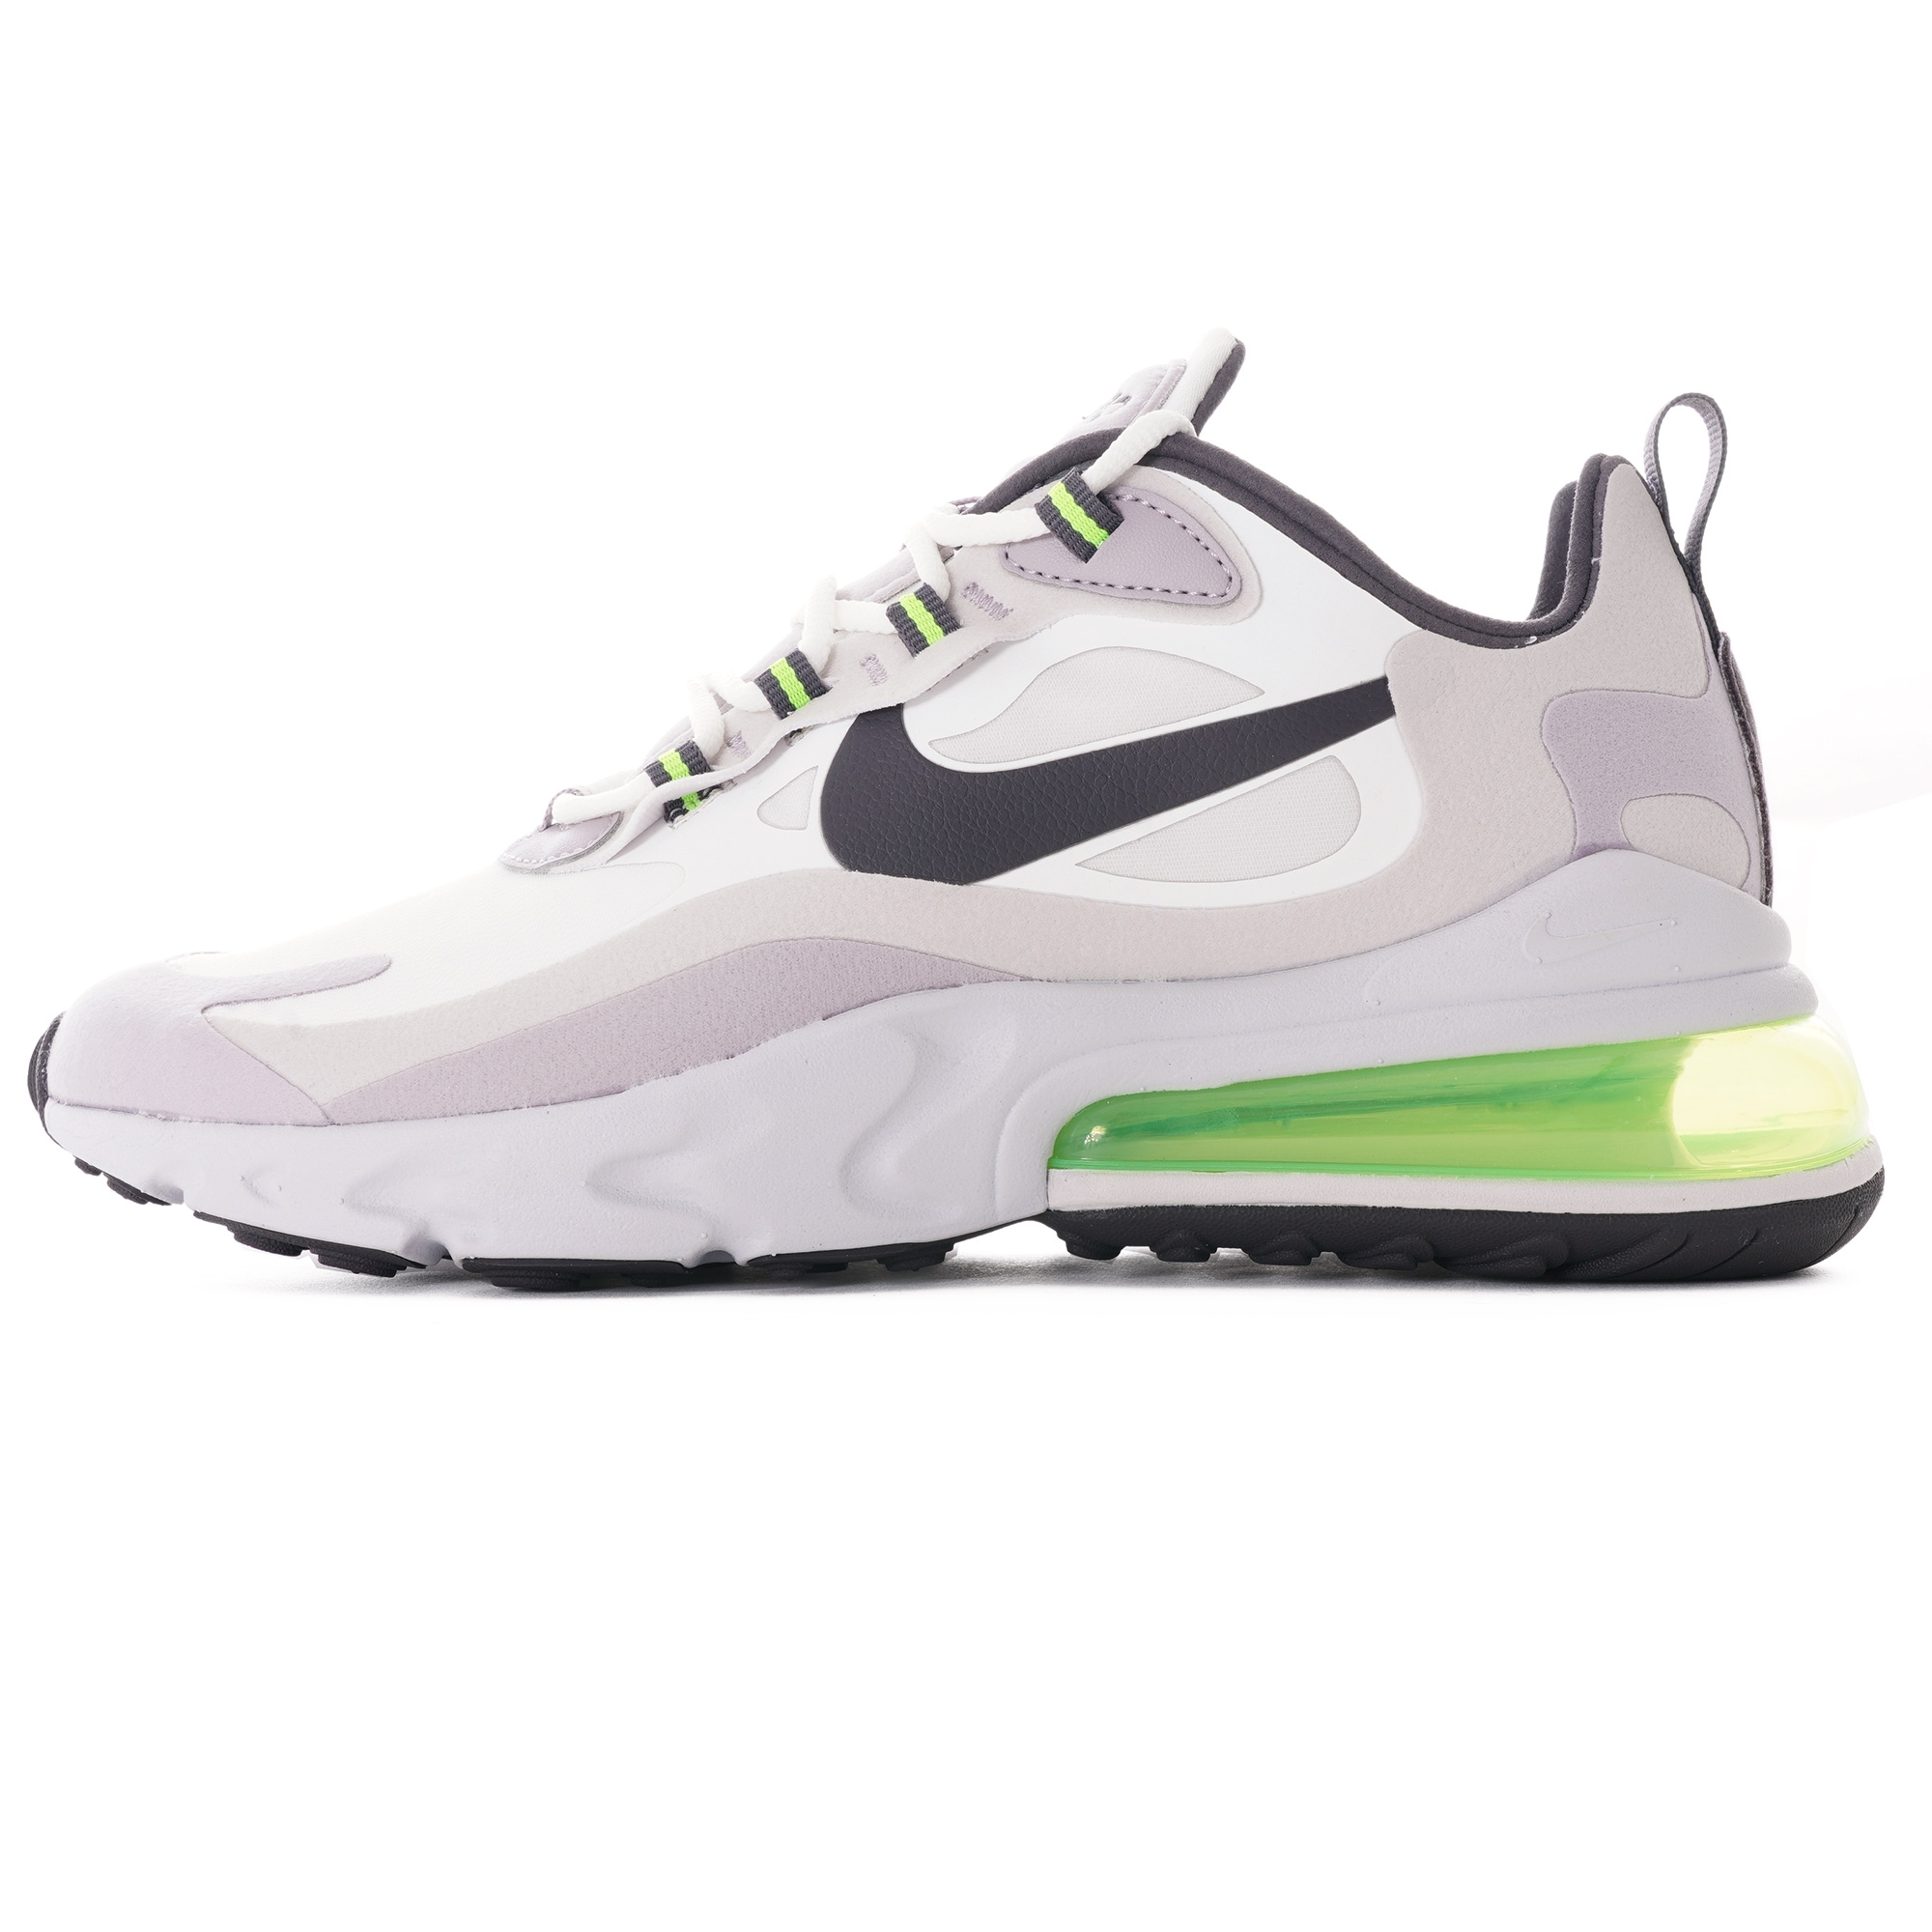 Nike Air Max 270 React White Ci3866 100